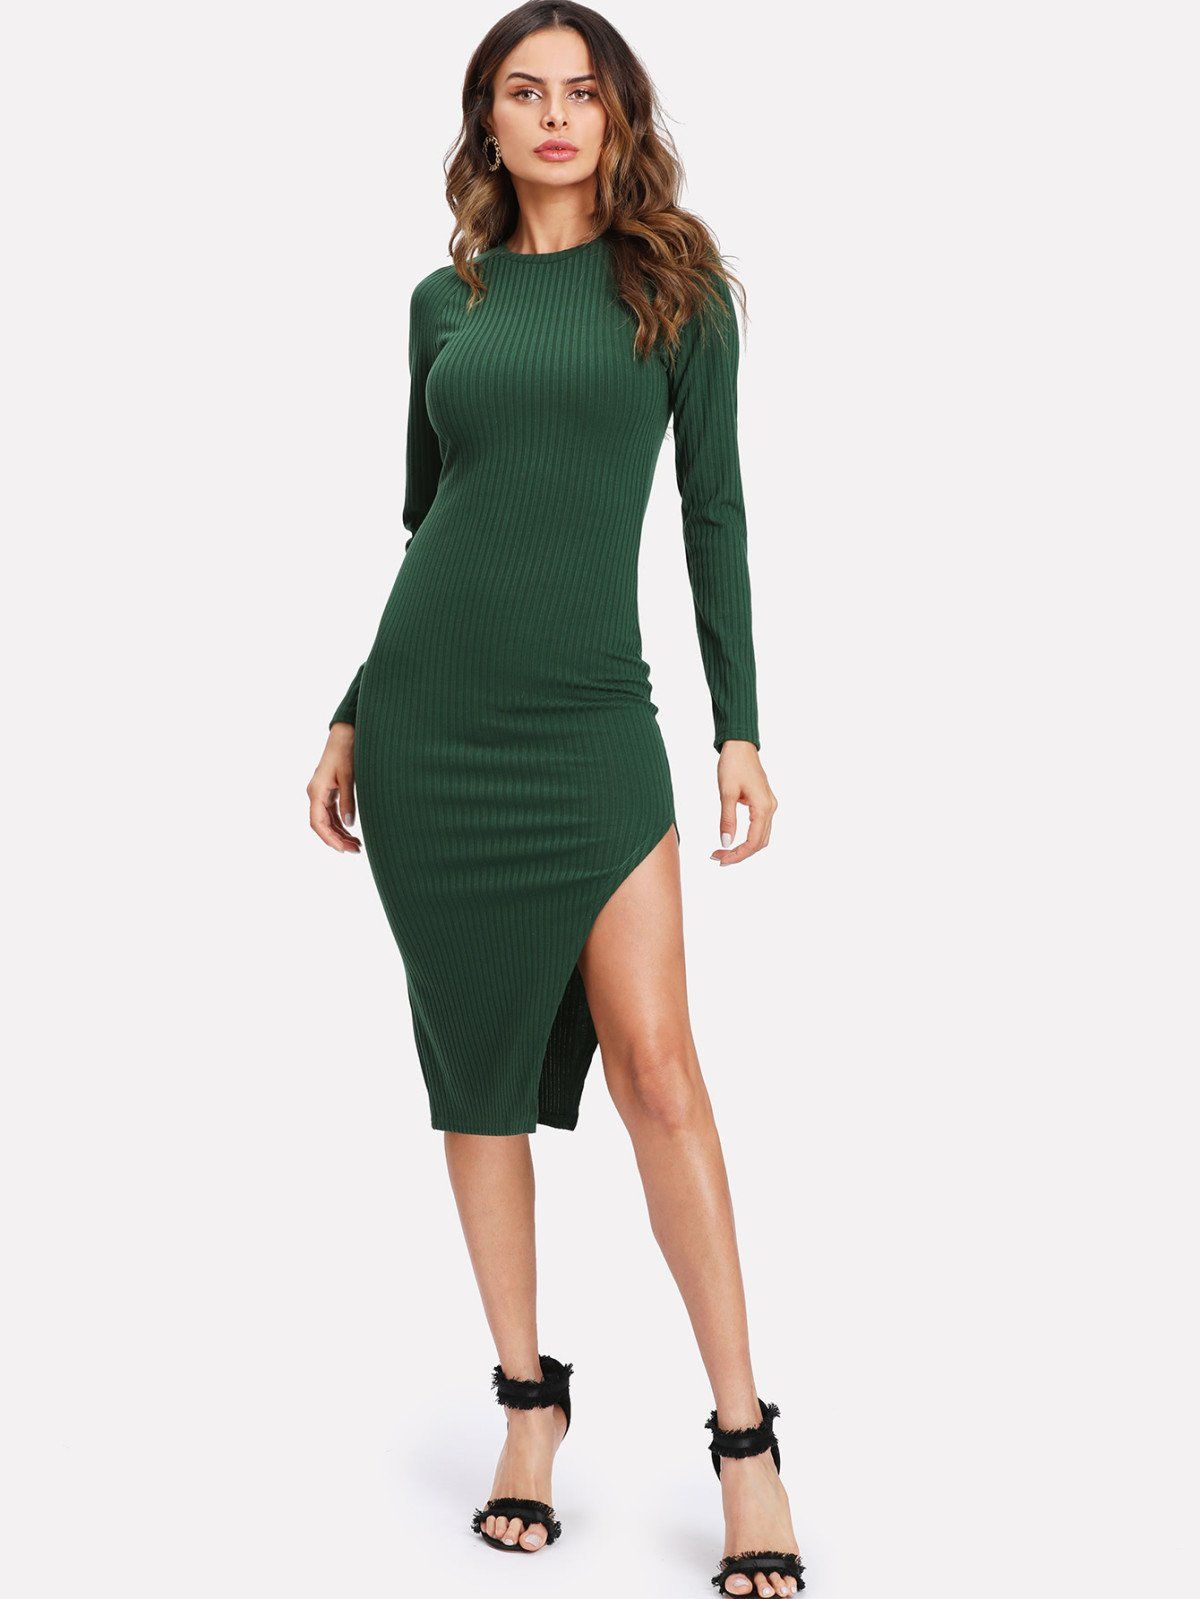 Asymmetrical slit hem ribbed knit dress design trends rib knit